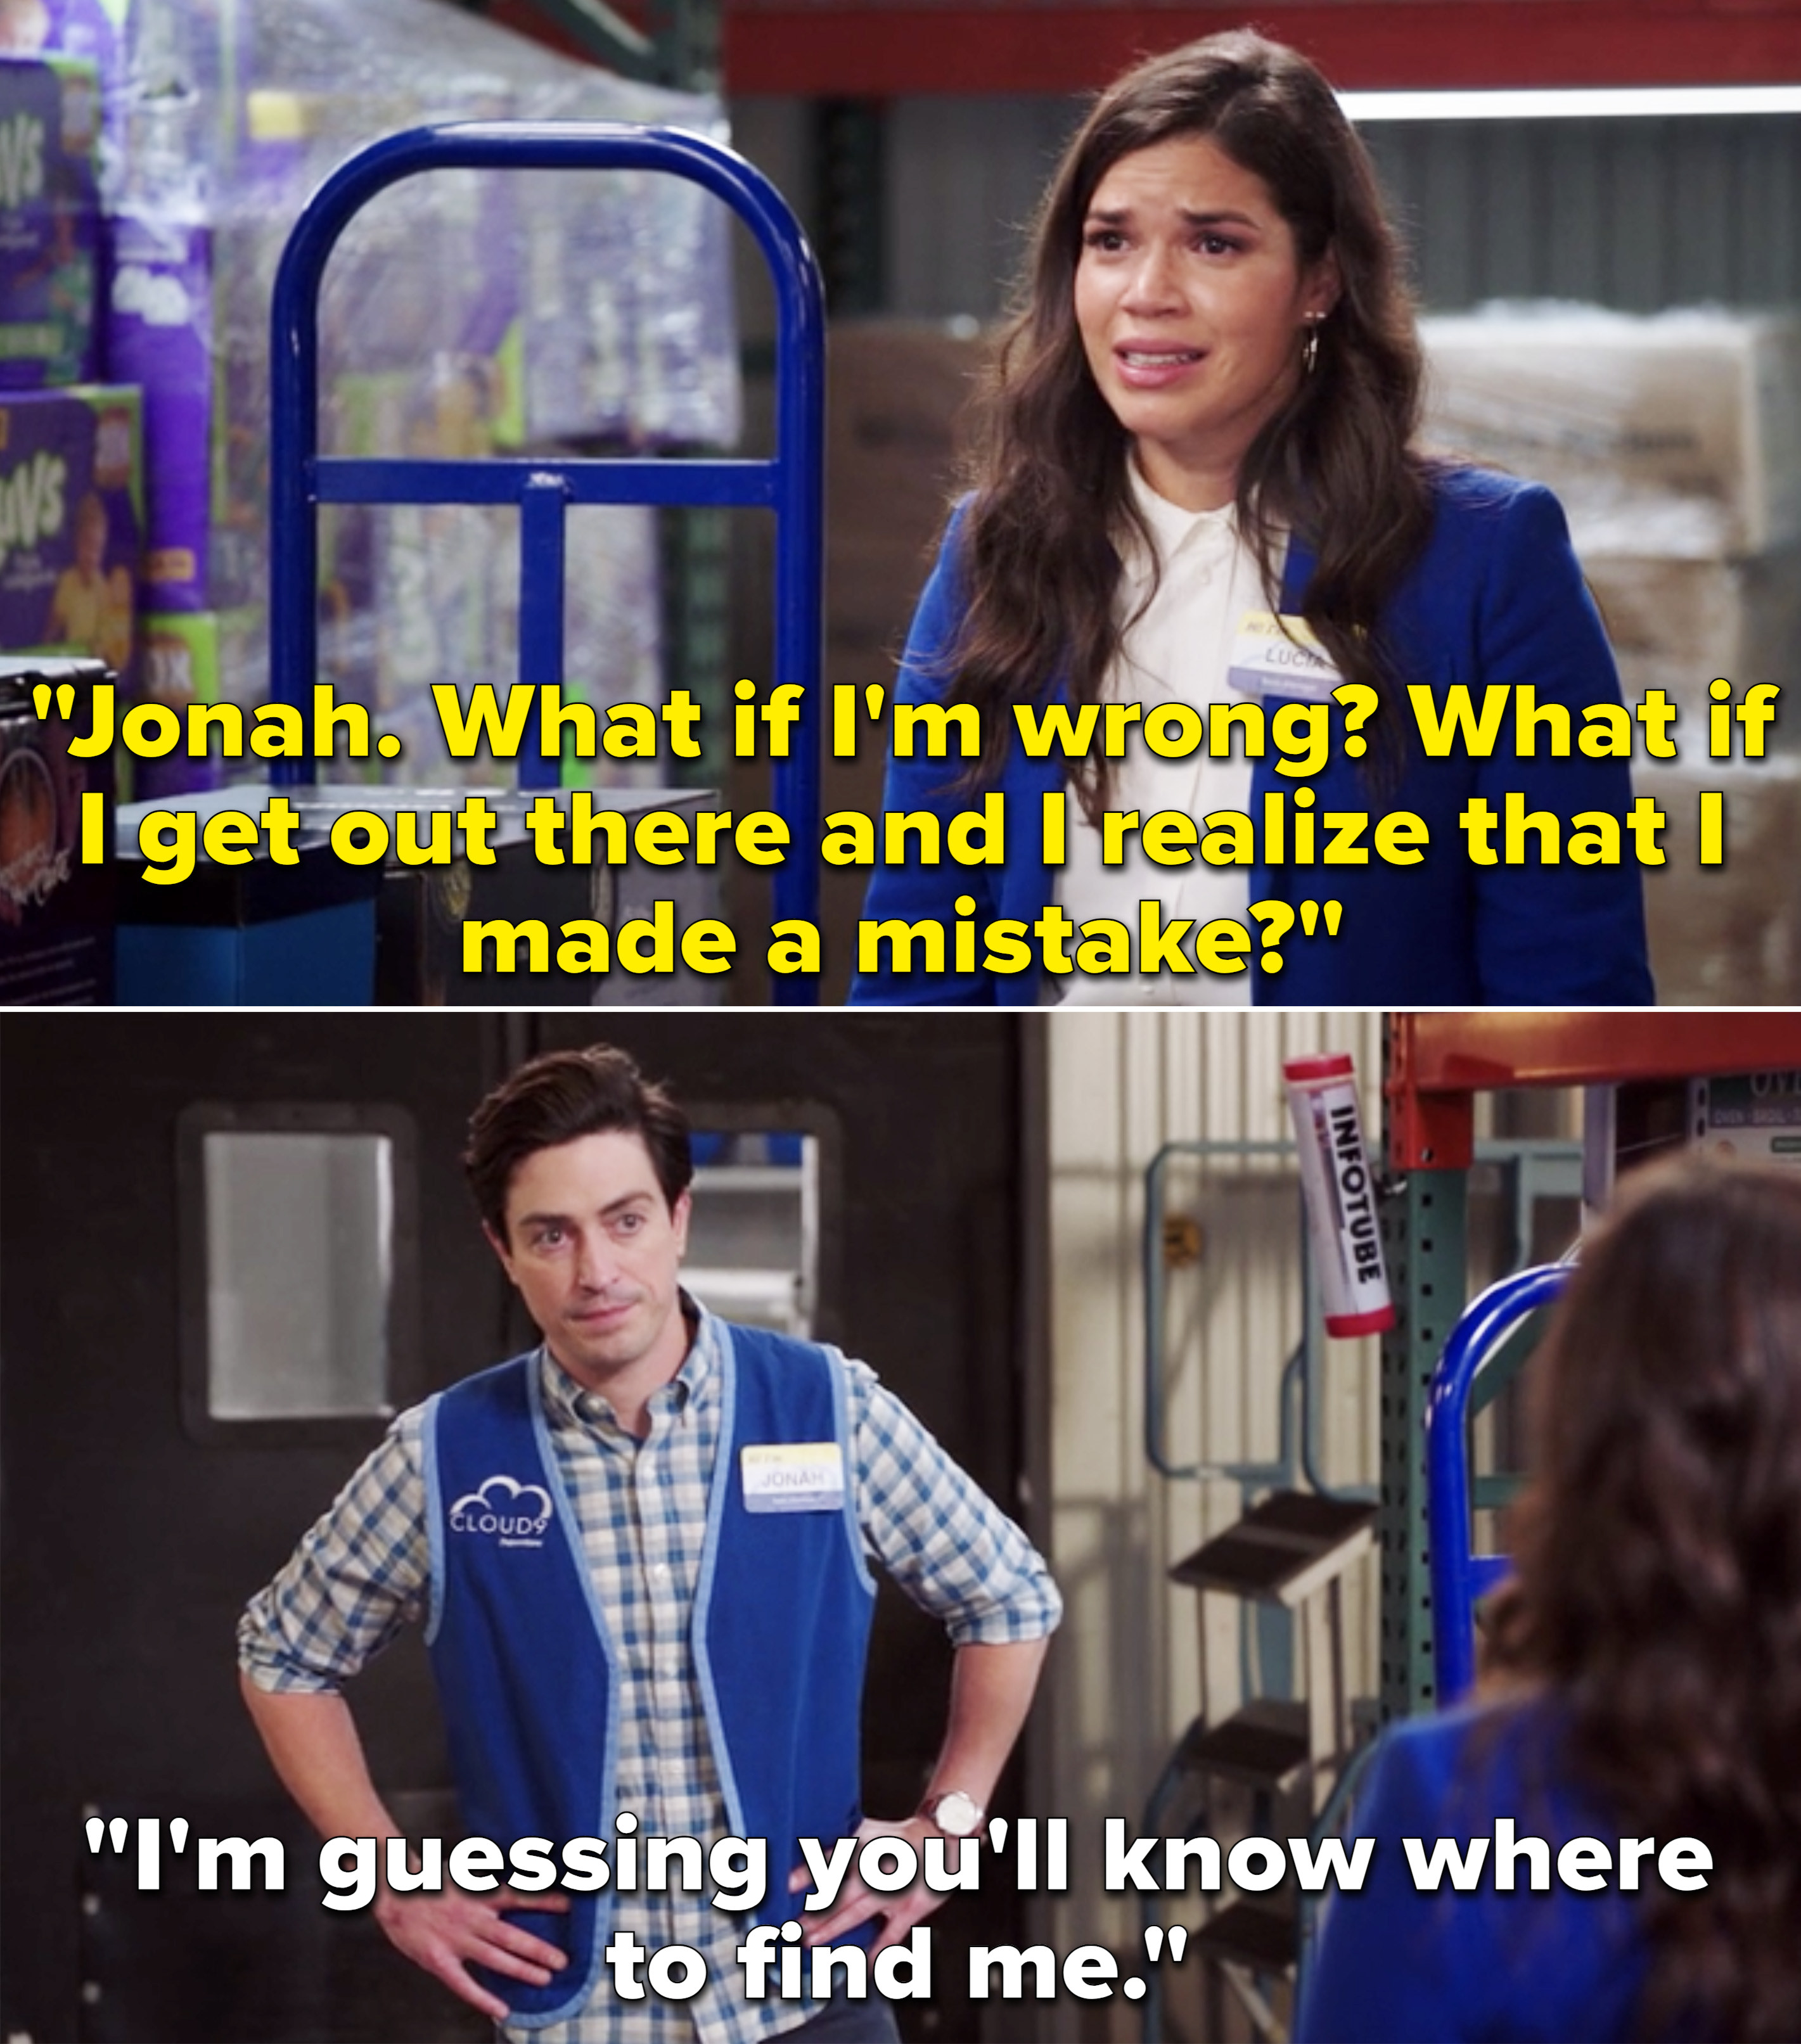 """Amy telling Jonah, """"What if I'm wrong? What if I get out there and I realize that I made a mistake?"""""""